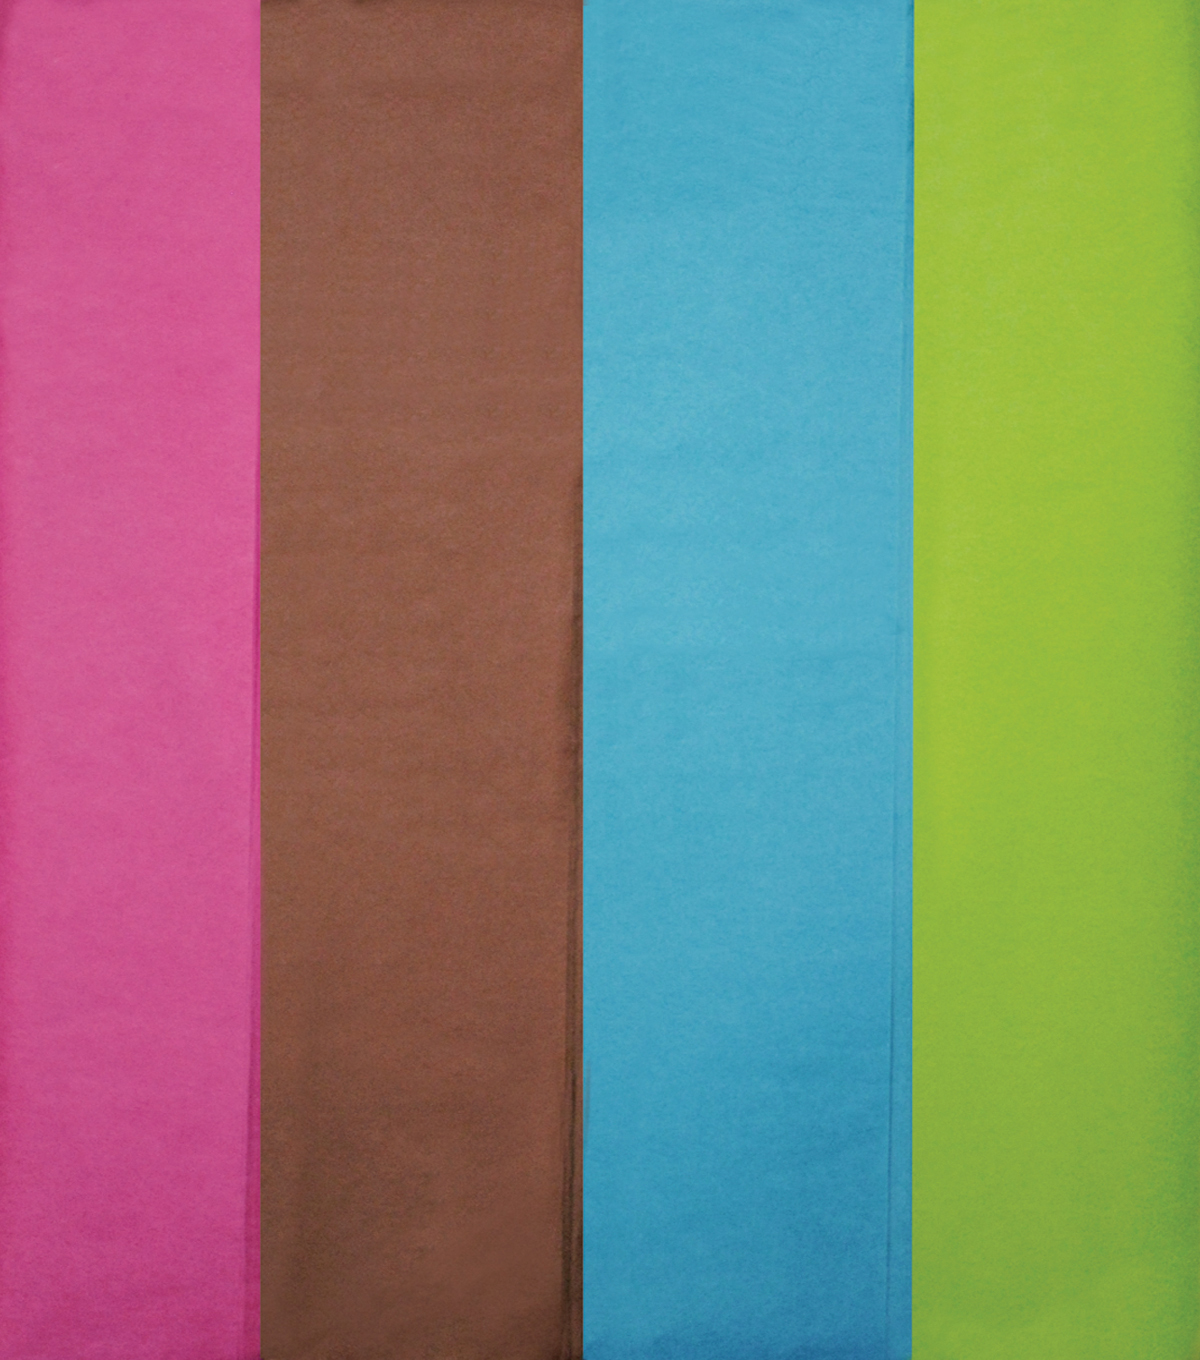 Darice 100 Sheets 20\u0027\u0027x26\u0027\u0027 Fashion Art Tissue Paper Value Pack